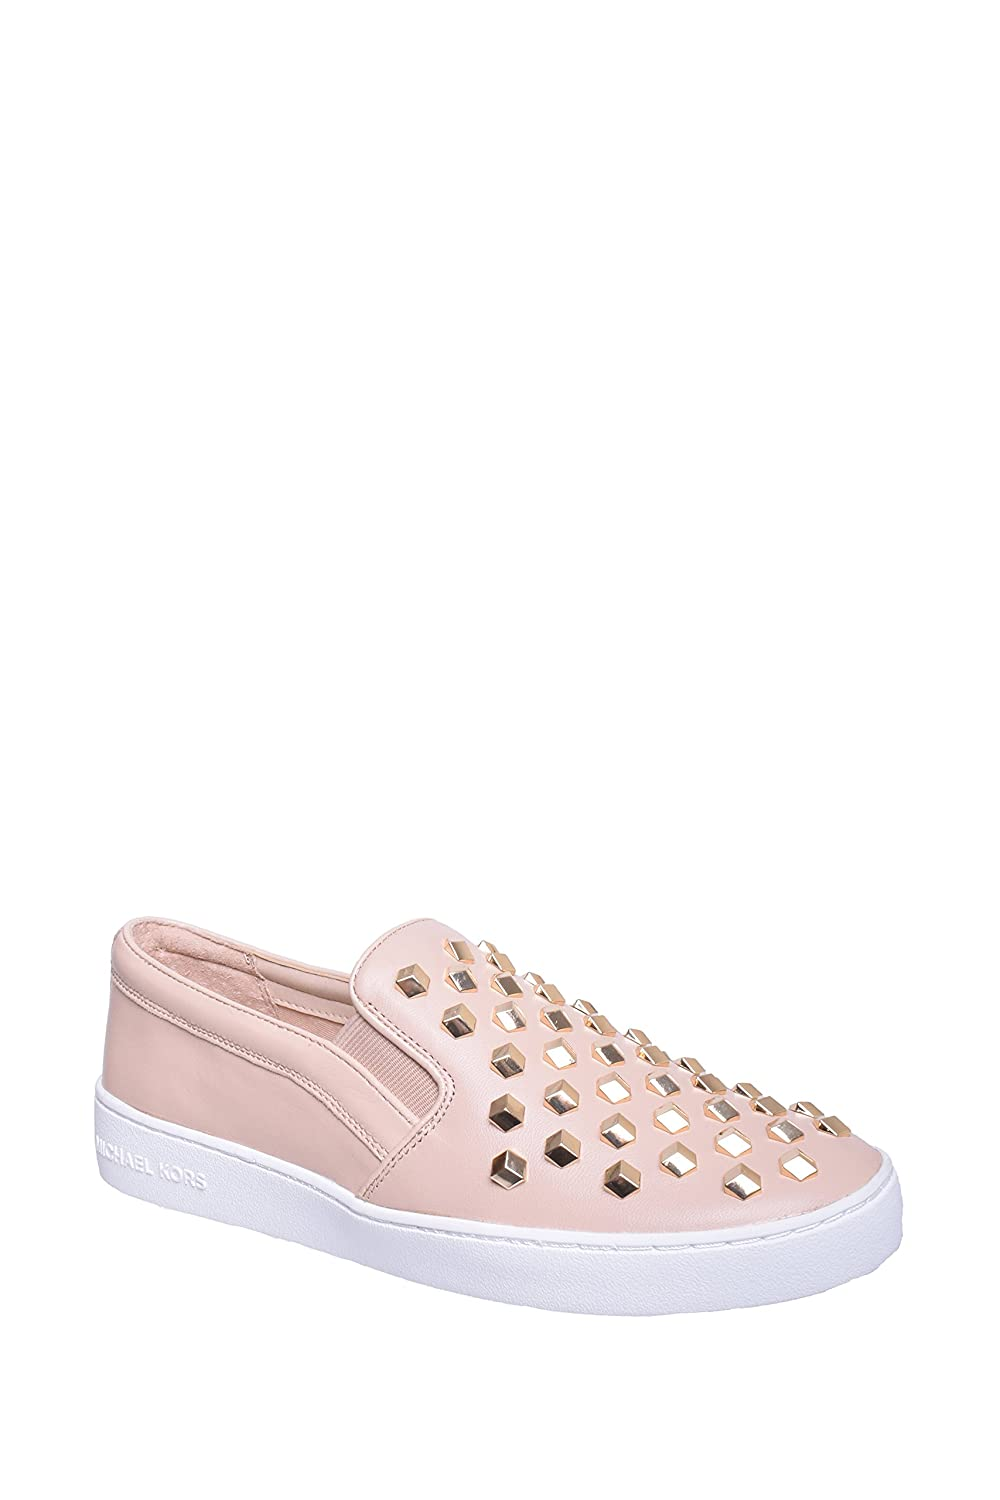 c1f001c167b9 Amazon.com  Michael Michael Kors Keaton Slip-On Sneakers 9.5  Shoes